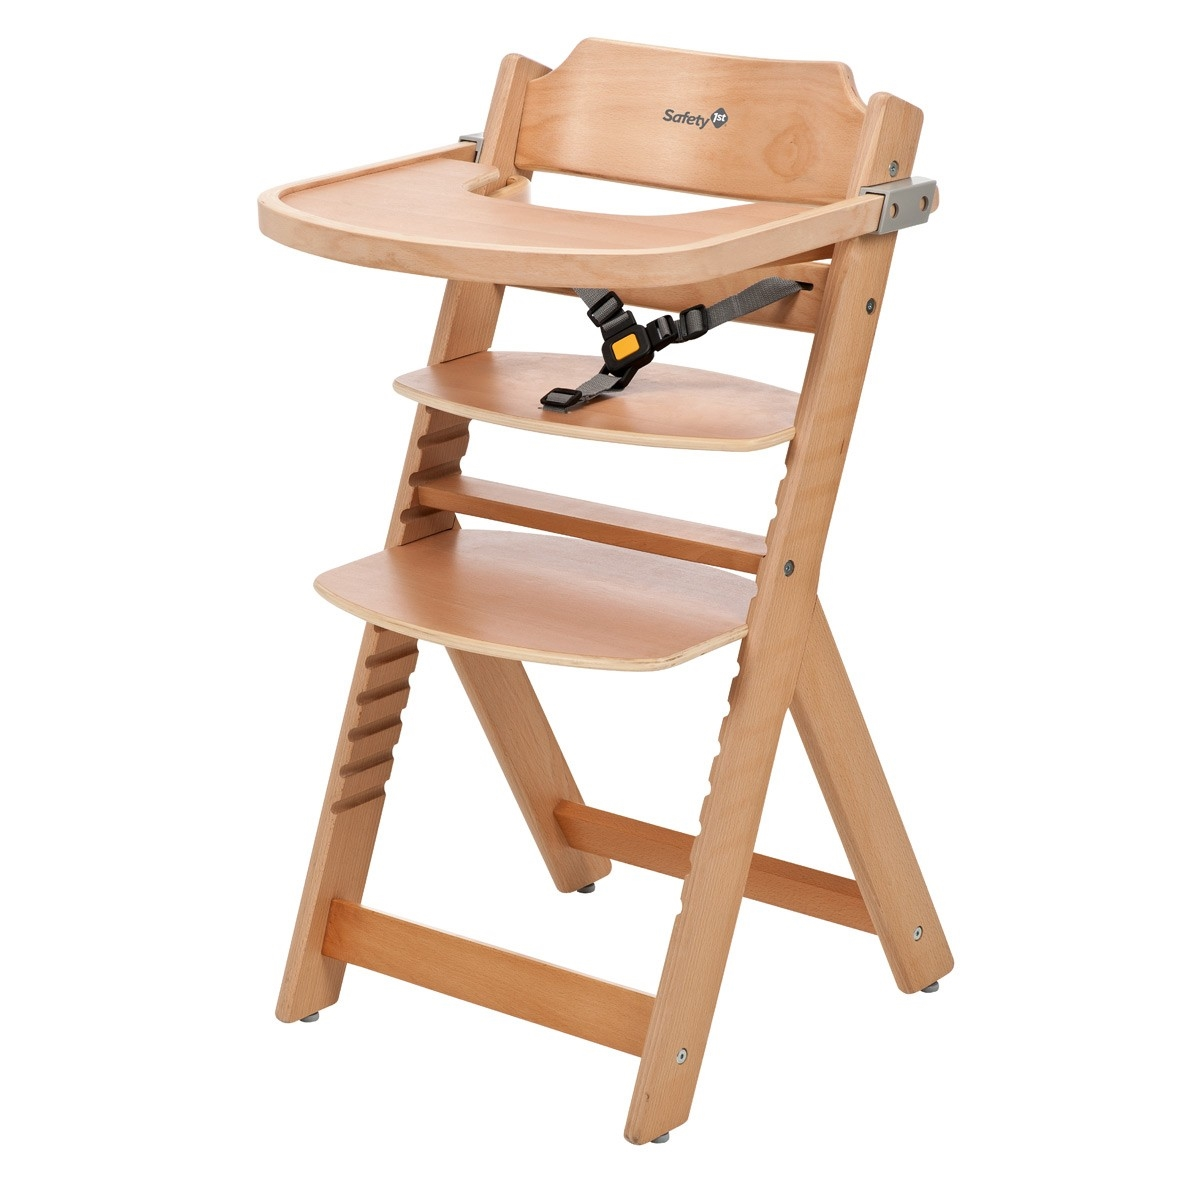 Wooden High Chairs For Babies Safety 1st Timba Highchair Pine